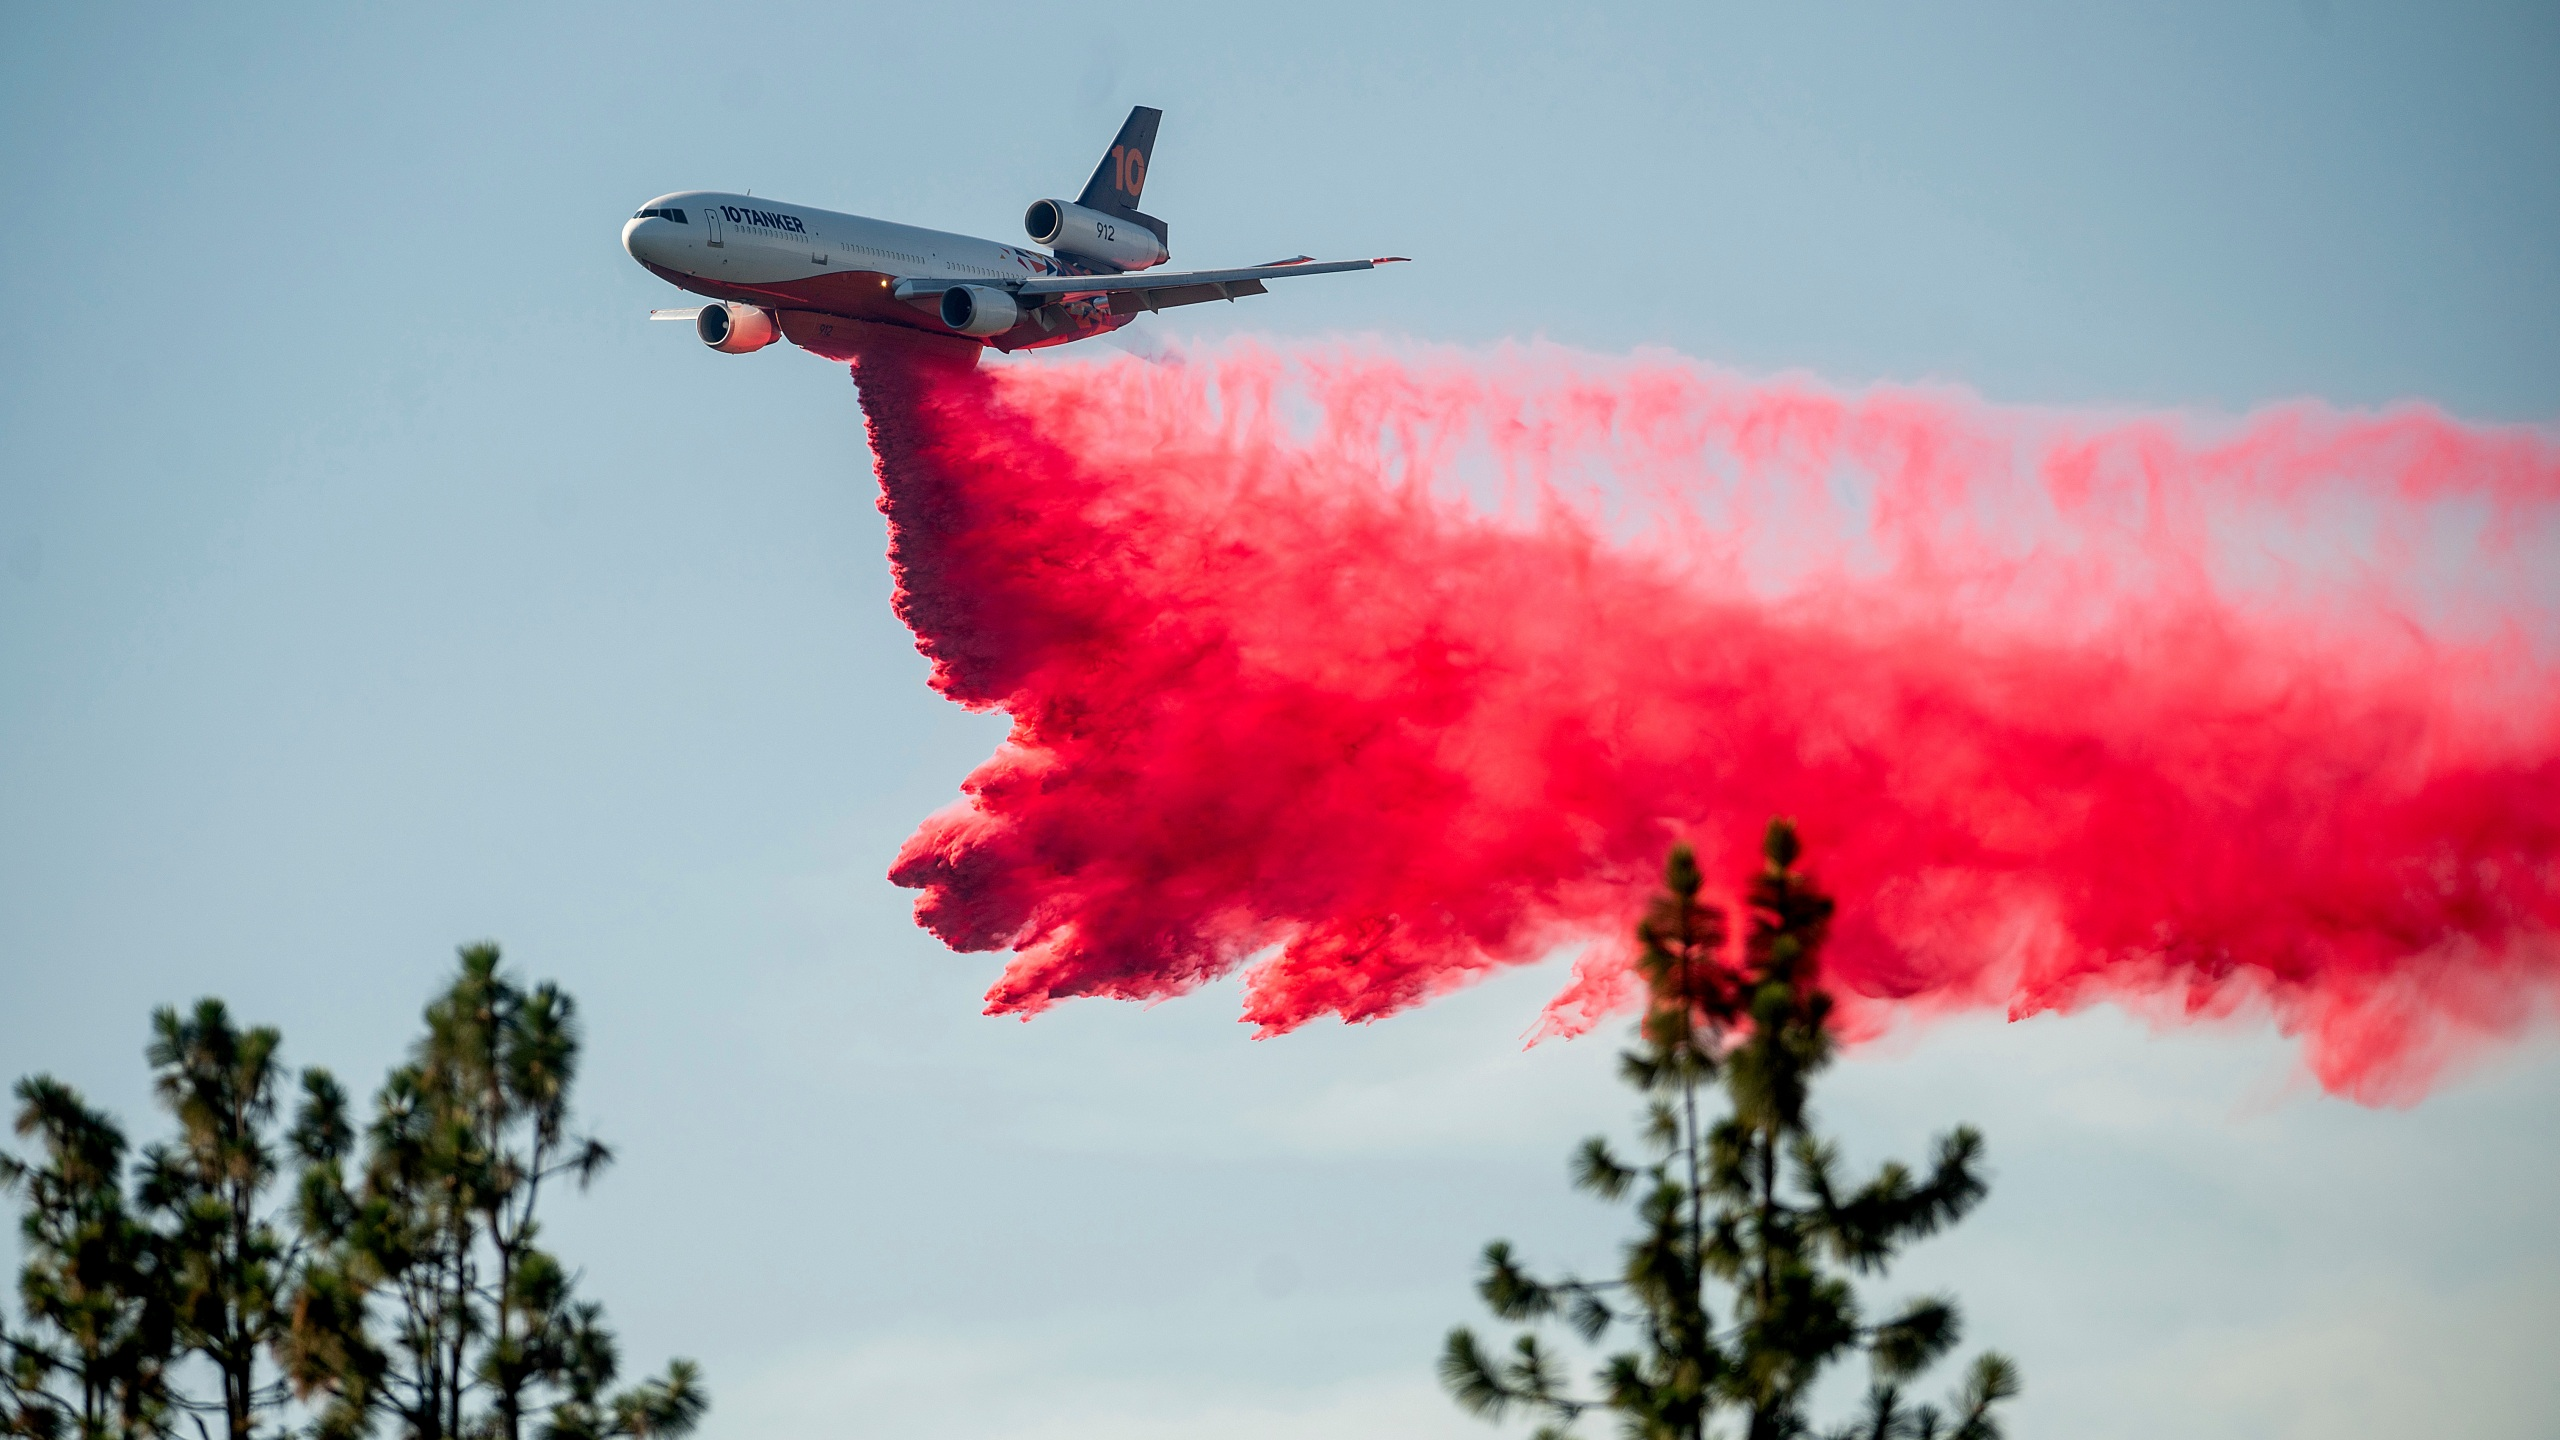 A DC-10 air tanker drops retardant while battling the Salt Fire near the Lakehead community of Unincorporated Shasta County, Calif., on Friday, July 2, 2021. (AP Photo/Noah Berger)